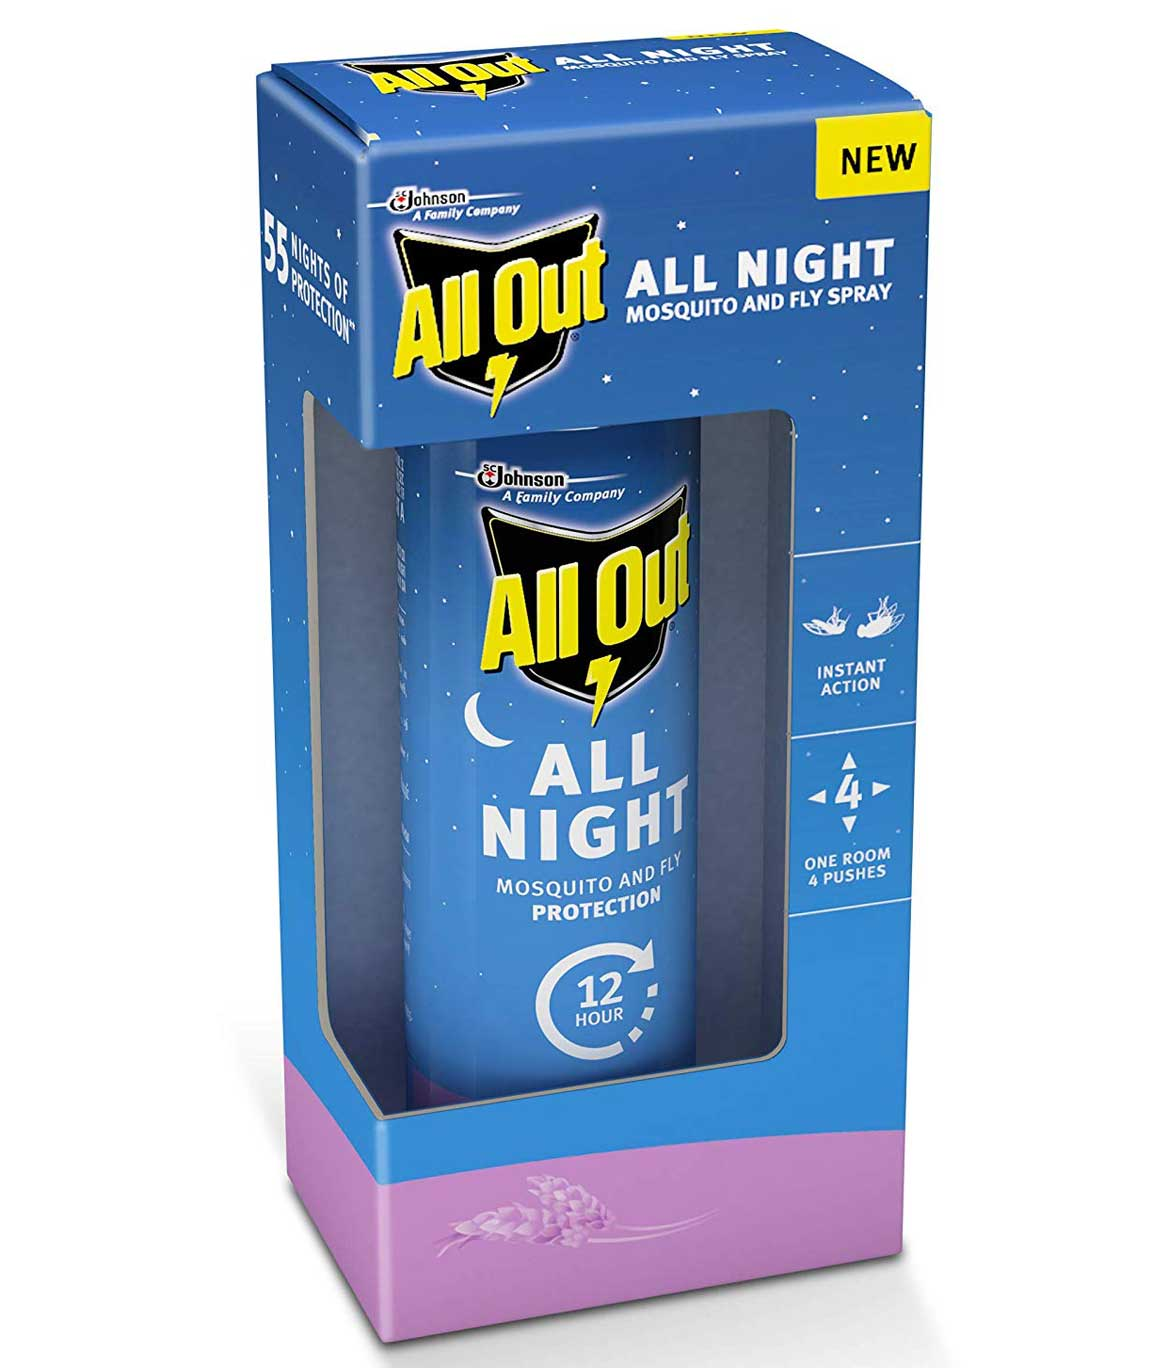 All Out All Night Mosquito and Fly Spray, 30ml